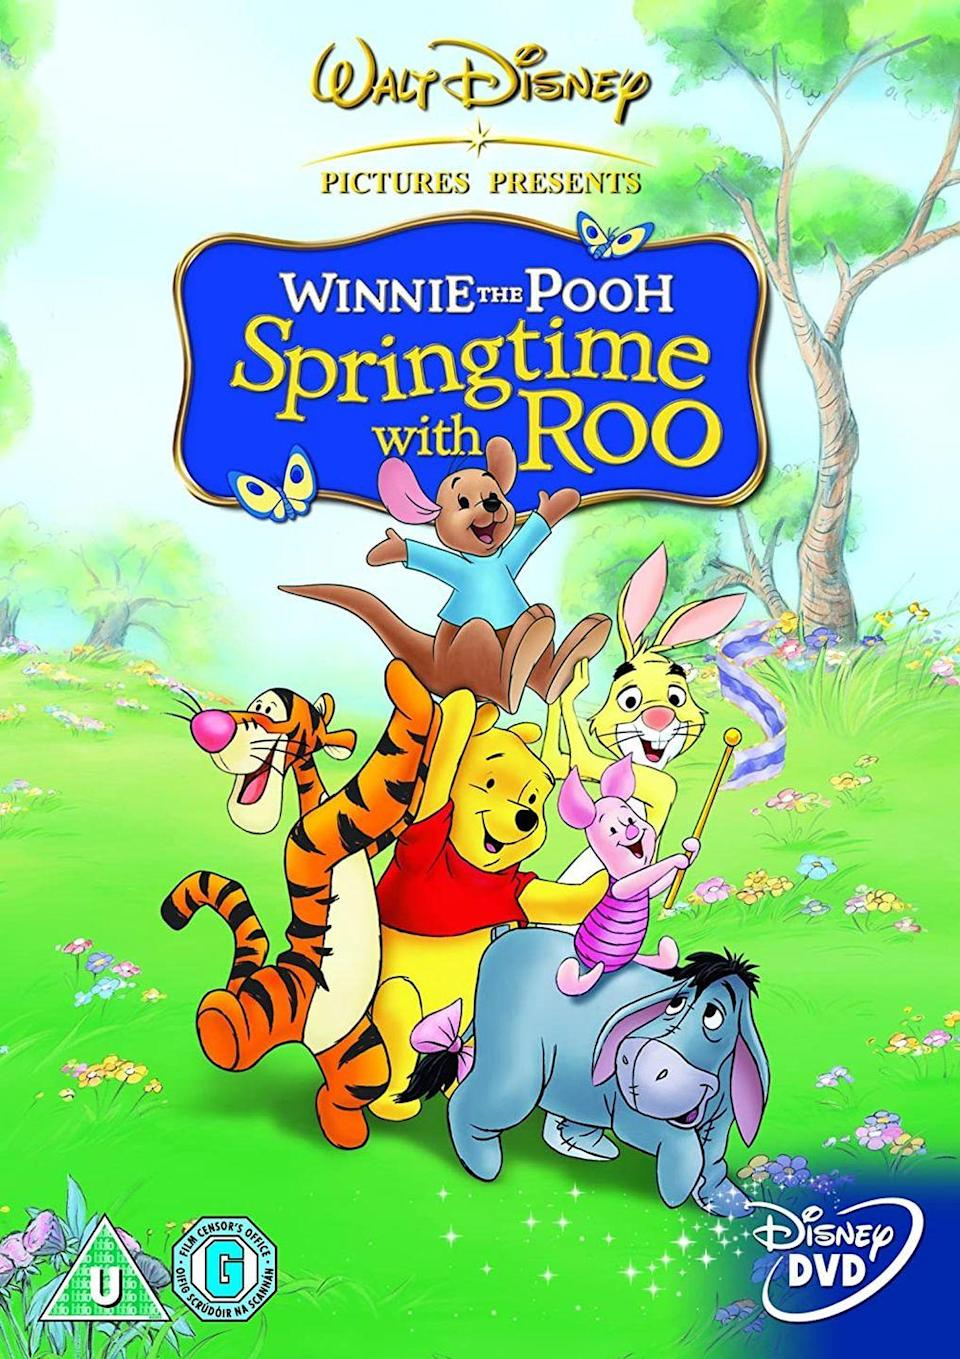 """<p>Based on the original characters from the A. A. Milne book series, this animated movie follows Roo, Tigger, Pooh, Piglet, and Eeyore as they convince Rabbit to join their Easter celebration. </p><p><a class=""""link rapid-noclick-resp"""" href=""""https://go.redirectingat.com?id=74968X1596630&url=https%3A%2F%2Fwww.disneyplus.com%2Fmovies%2Fwinnie-the-pooh-springtime-with-roo%2F2Aqm3rkSoYKV&sref=https%3A%2F%2Fwww.womansday.com%2Flife%2Fentertainment%2Fg16643651%2Feaster-movies%2F"""" rel=""""nofollow noopener"""" target=""""_blank"""" data-ylk=""""slk:STREAM NOW"""">STREAM NOW</a></p>"""